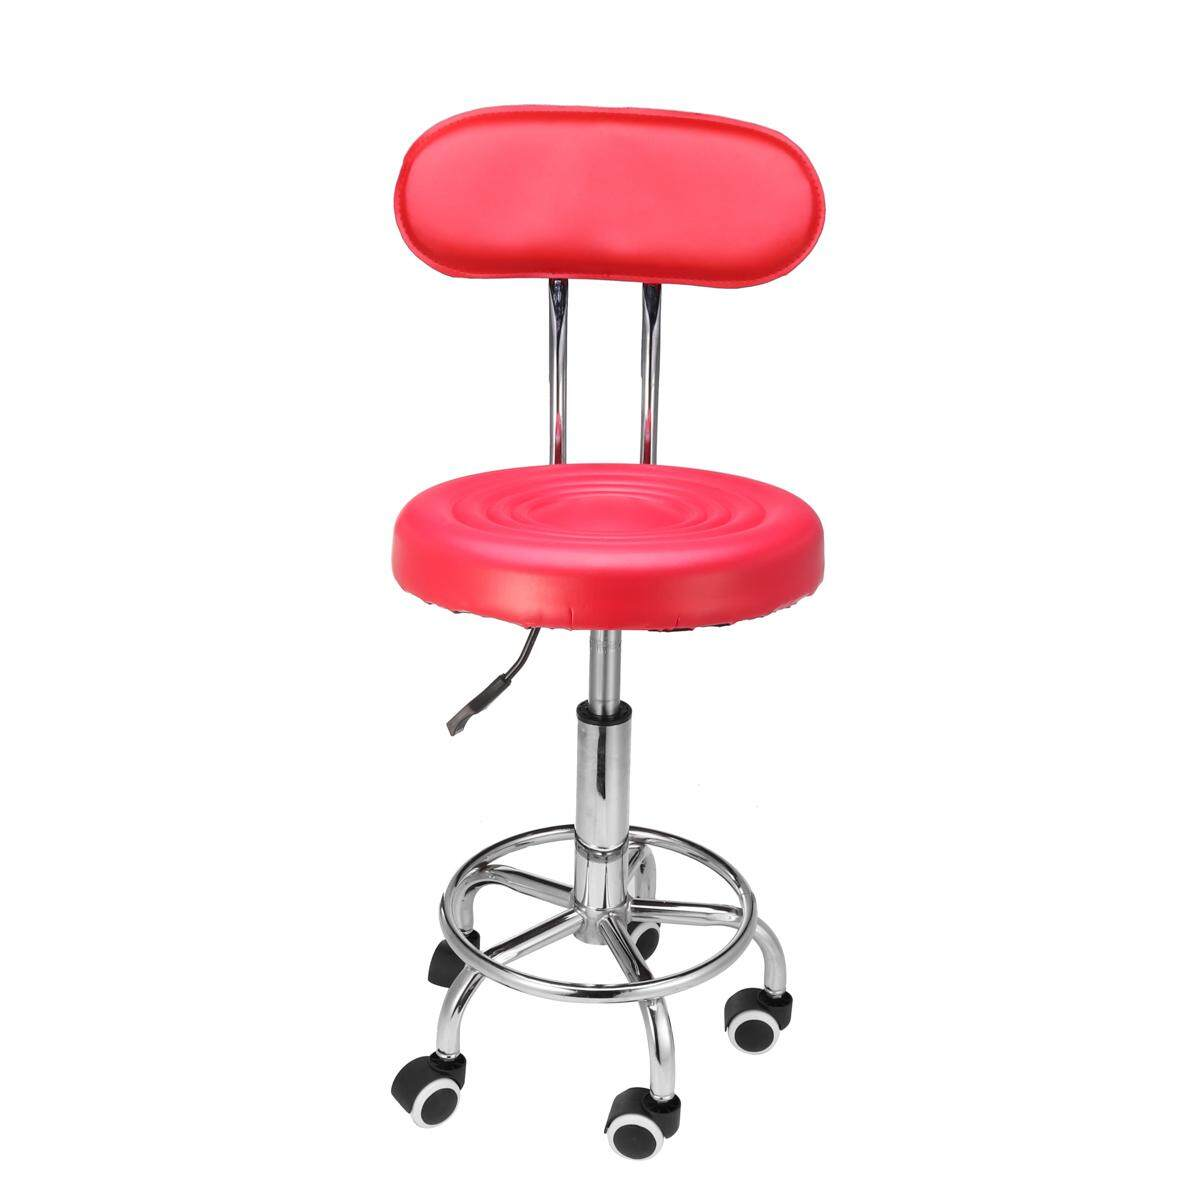 Salon Stool Kursi Putar Sandaran Hairdressing Barber Beauty Hydraulic Lift AU Merah-Internasional